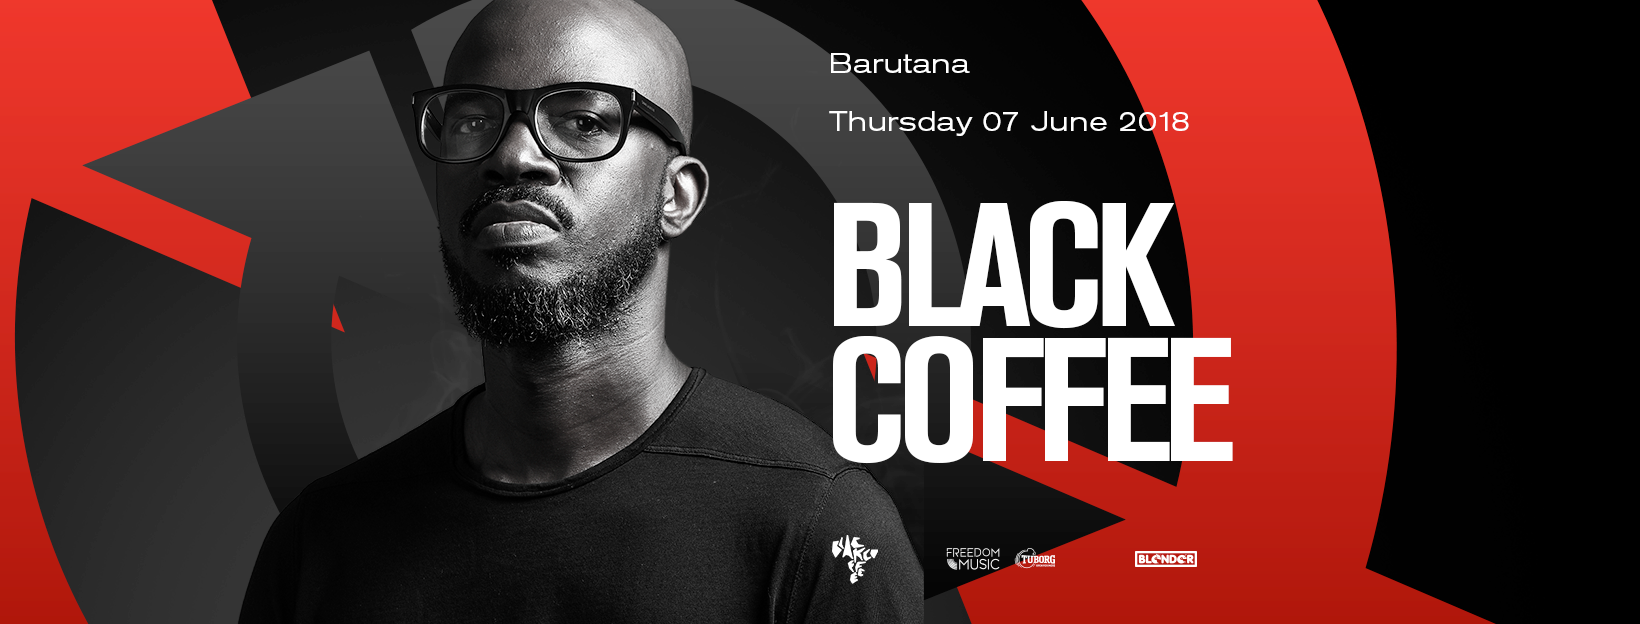 Black Coffee, Barutana